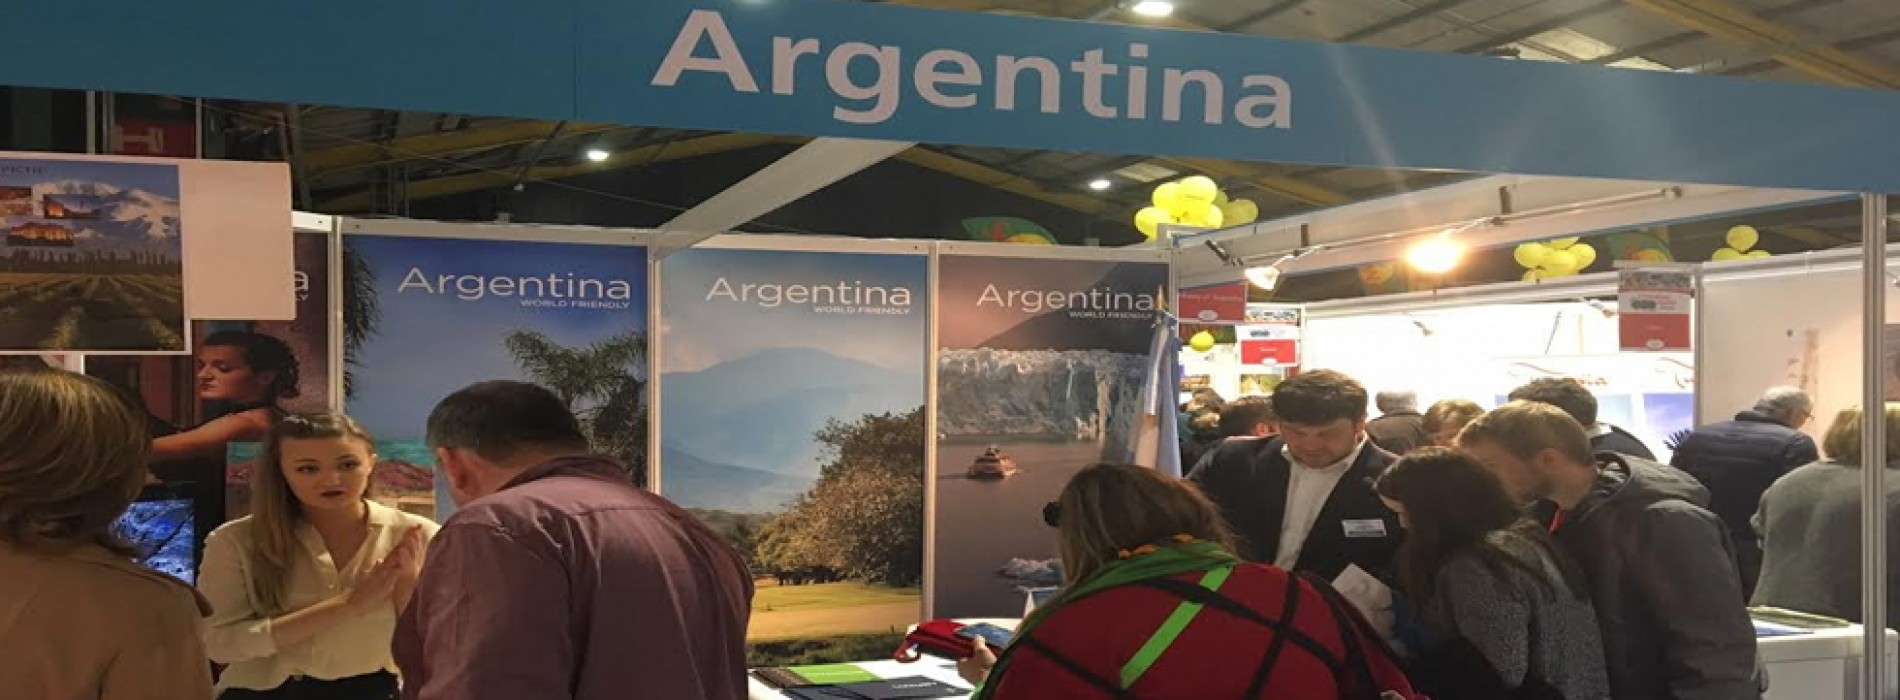 Outstanding presence of Argentina in Ireland